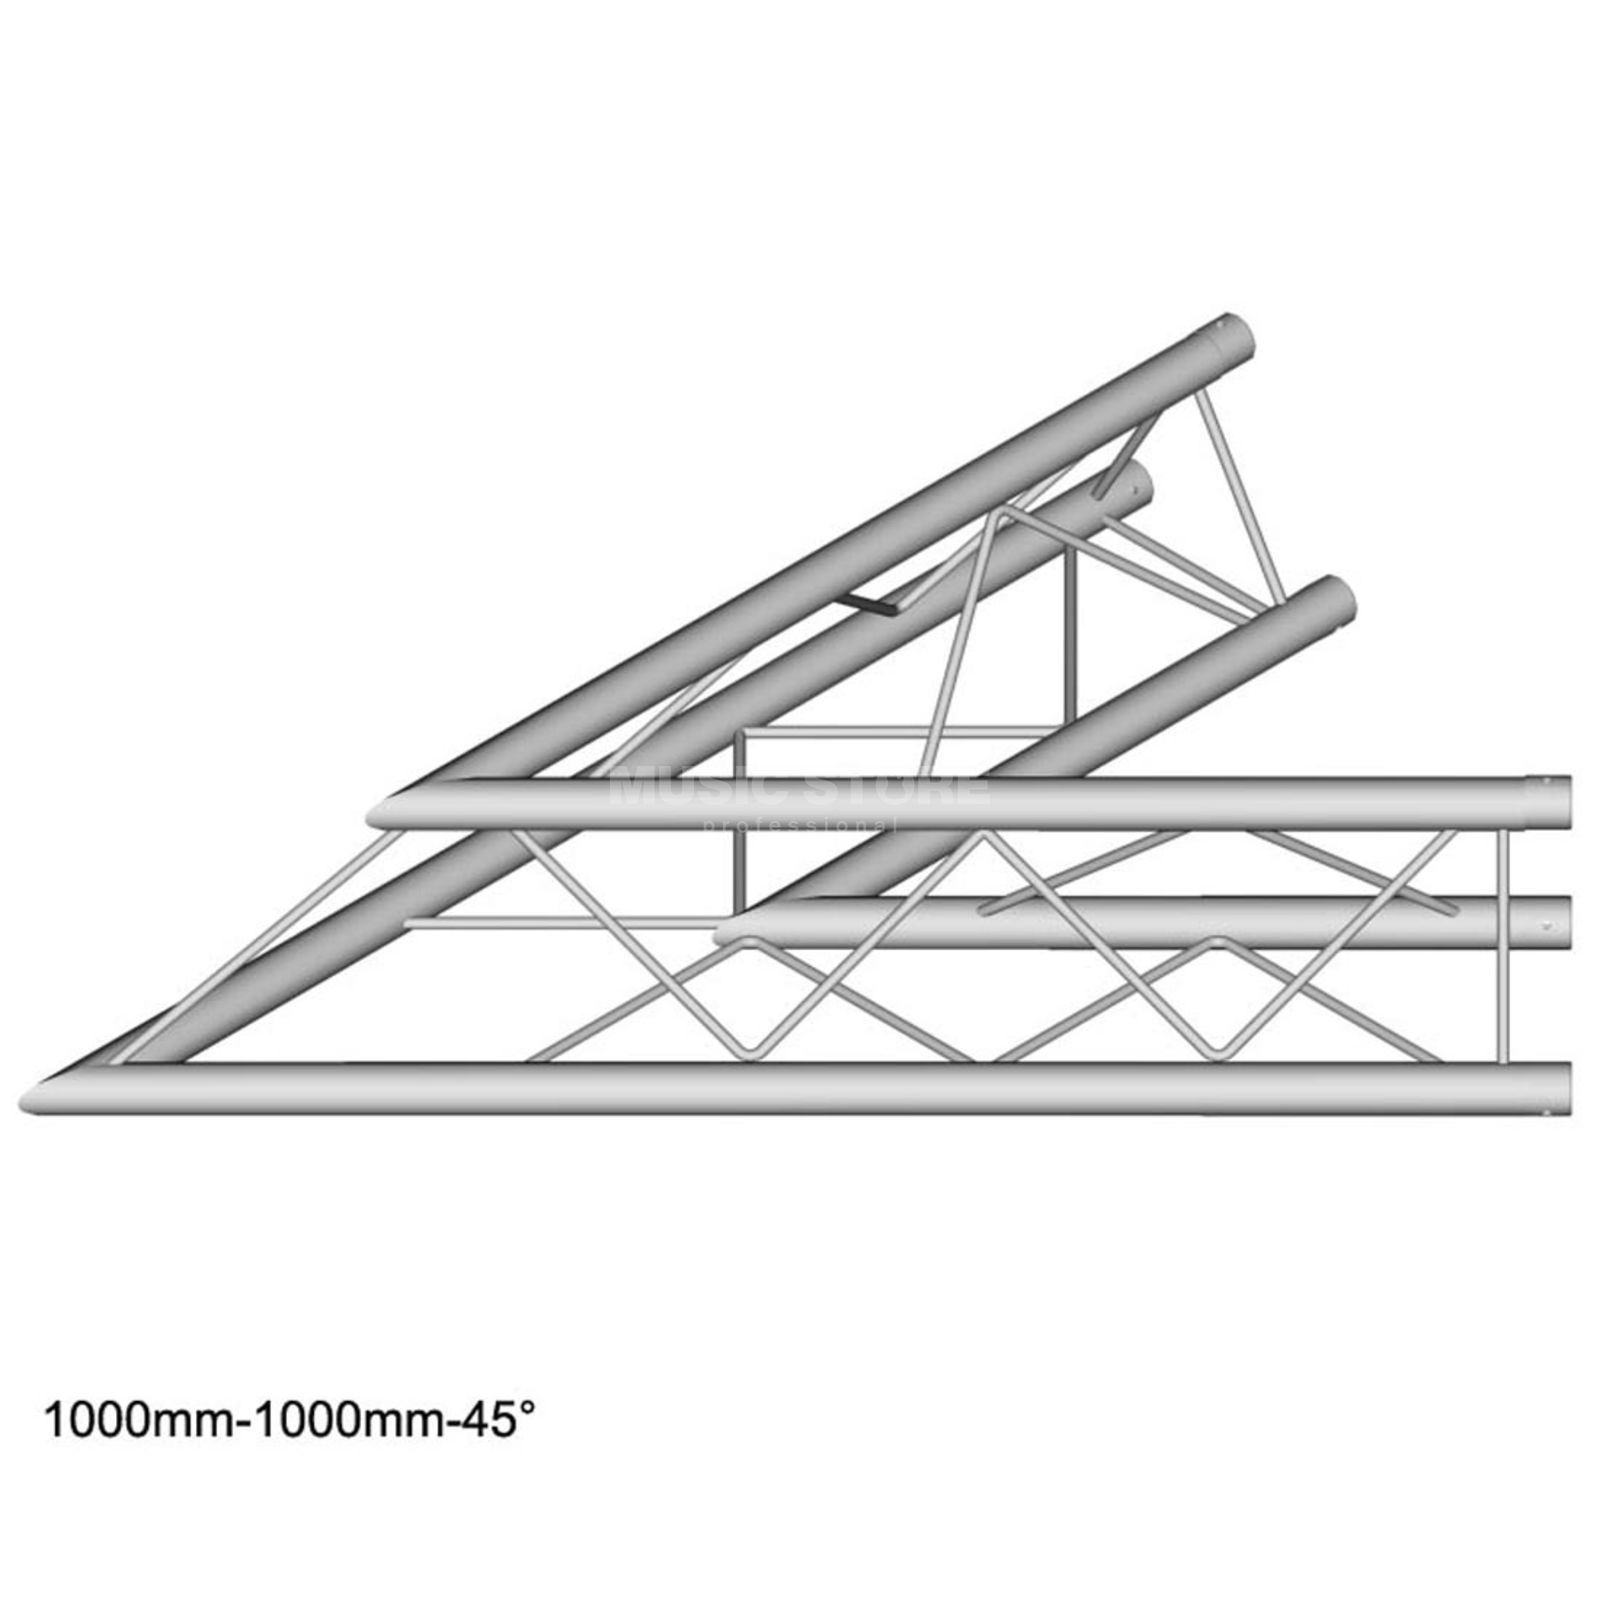 DURATRUSS DT 23 C19-L45, 3-Point Truss 45° Corner, 2-Way Produktbillede